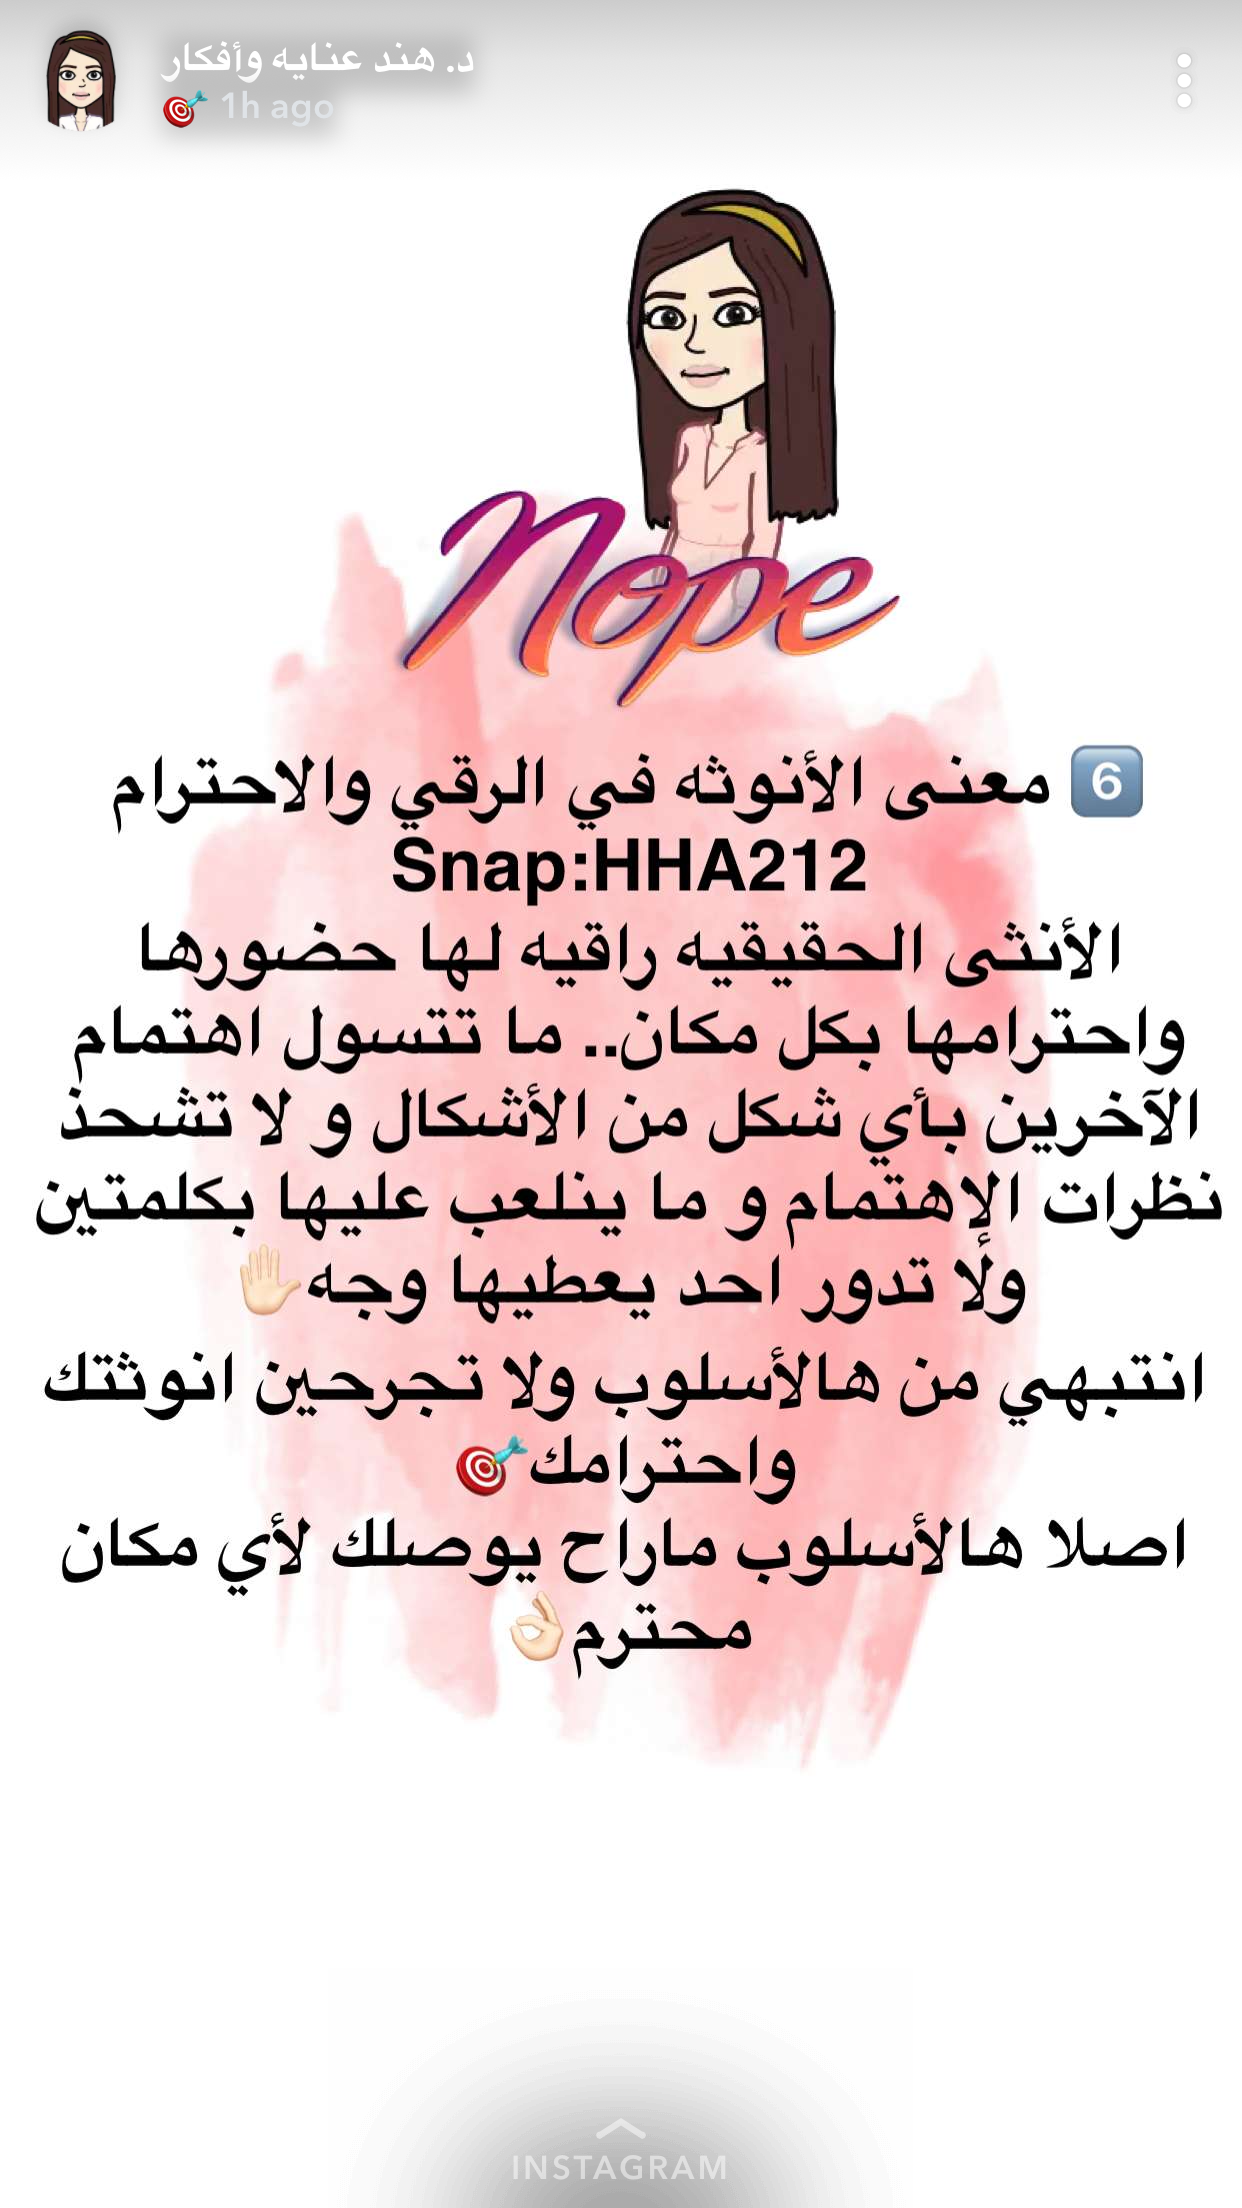 Pin By Nidal Alrashi On معنى الأنوثة Social Quotes Habit Quotes Queen Quotes